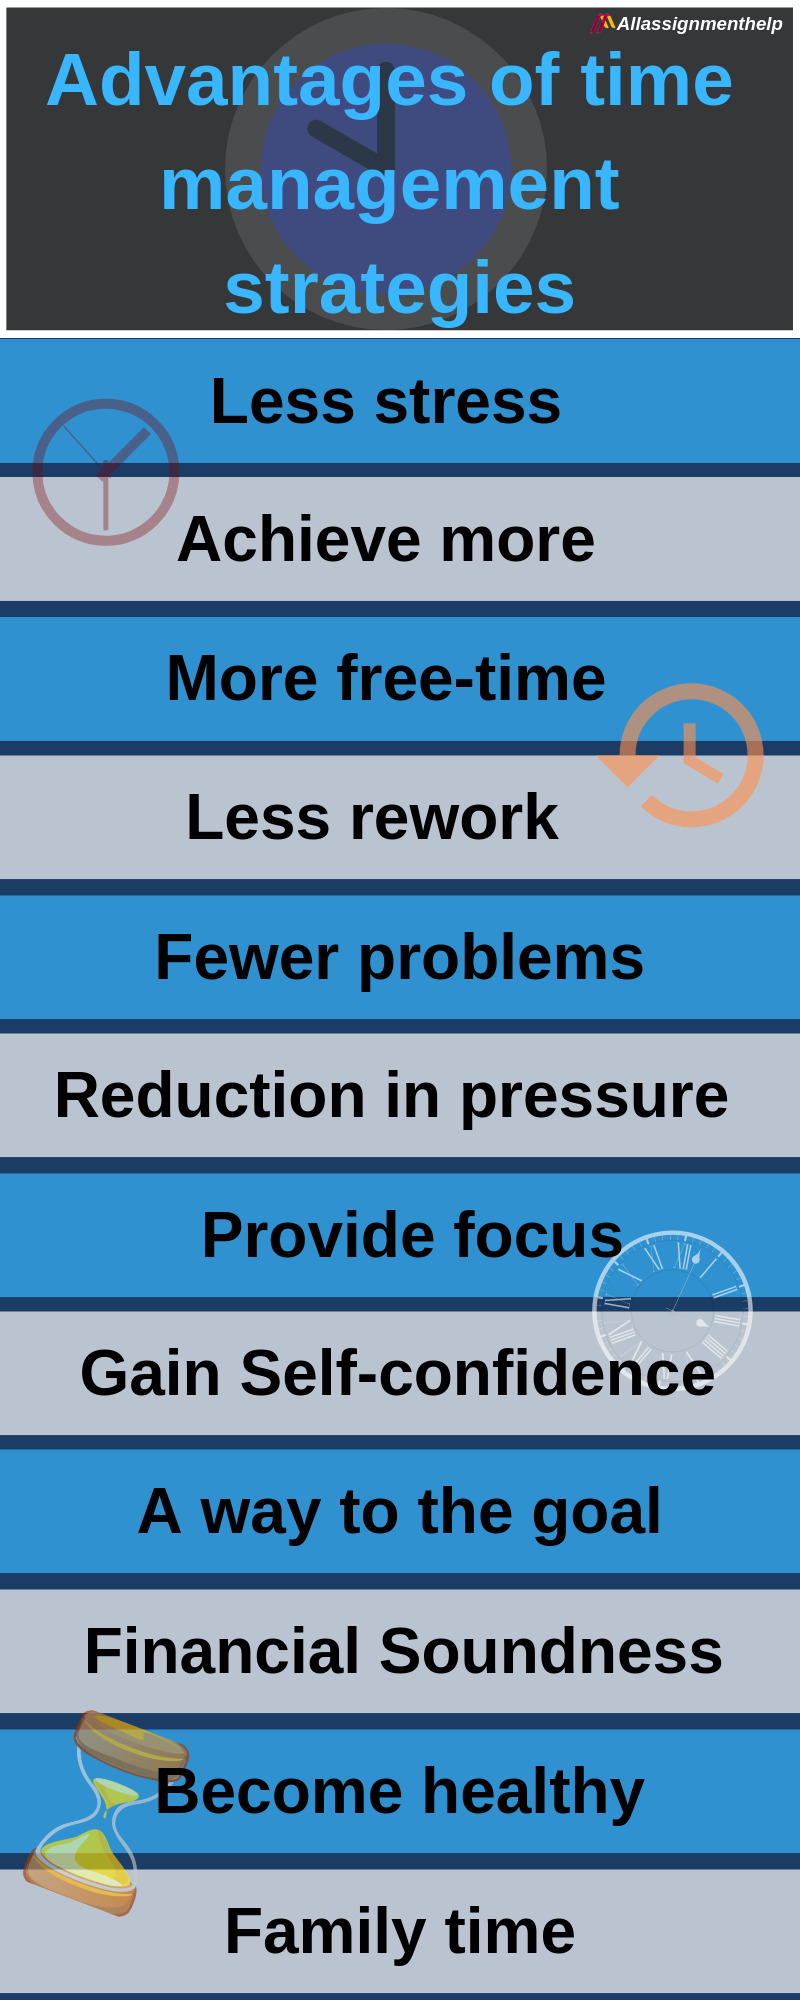 advantages of time management strategies.png